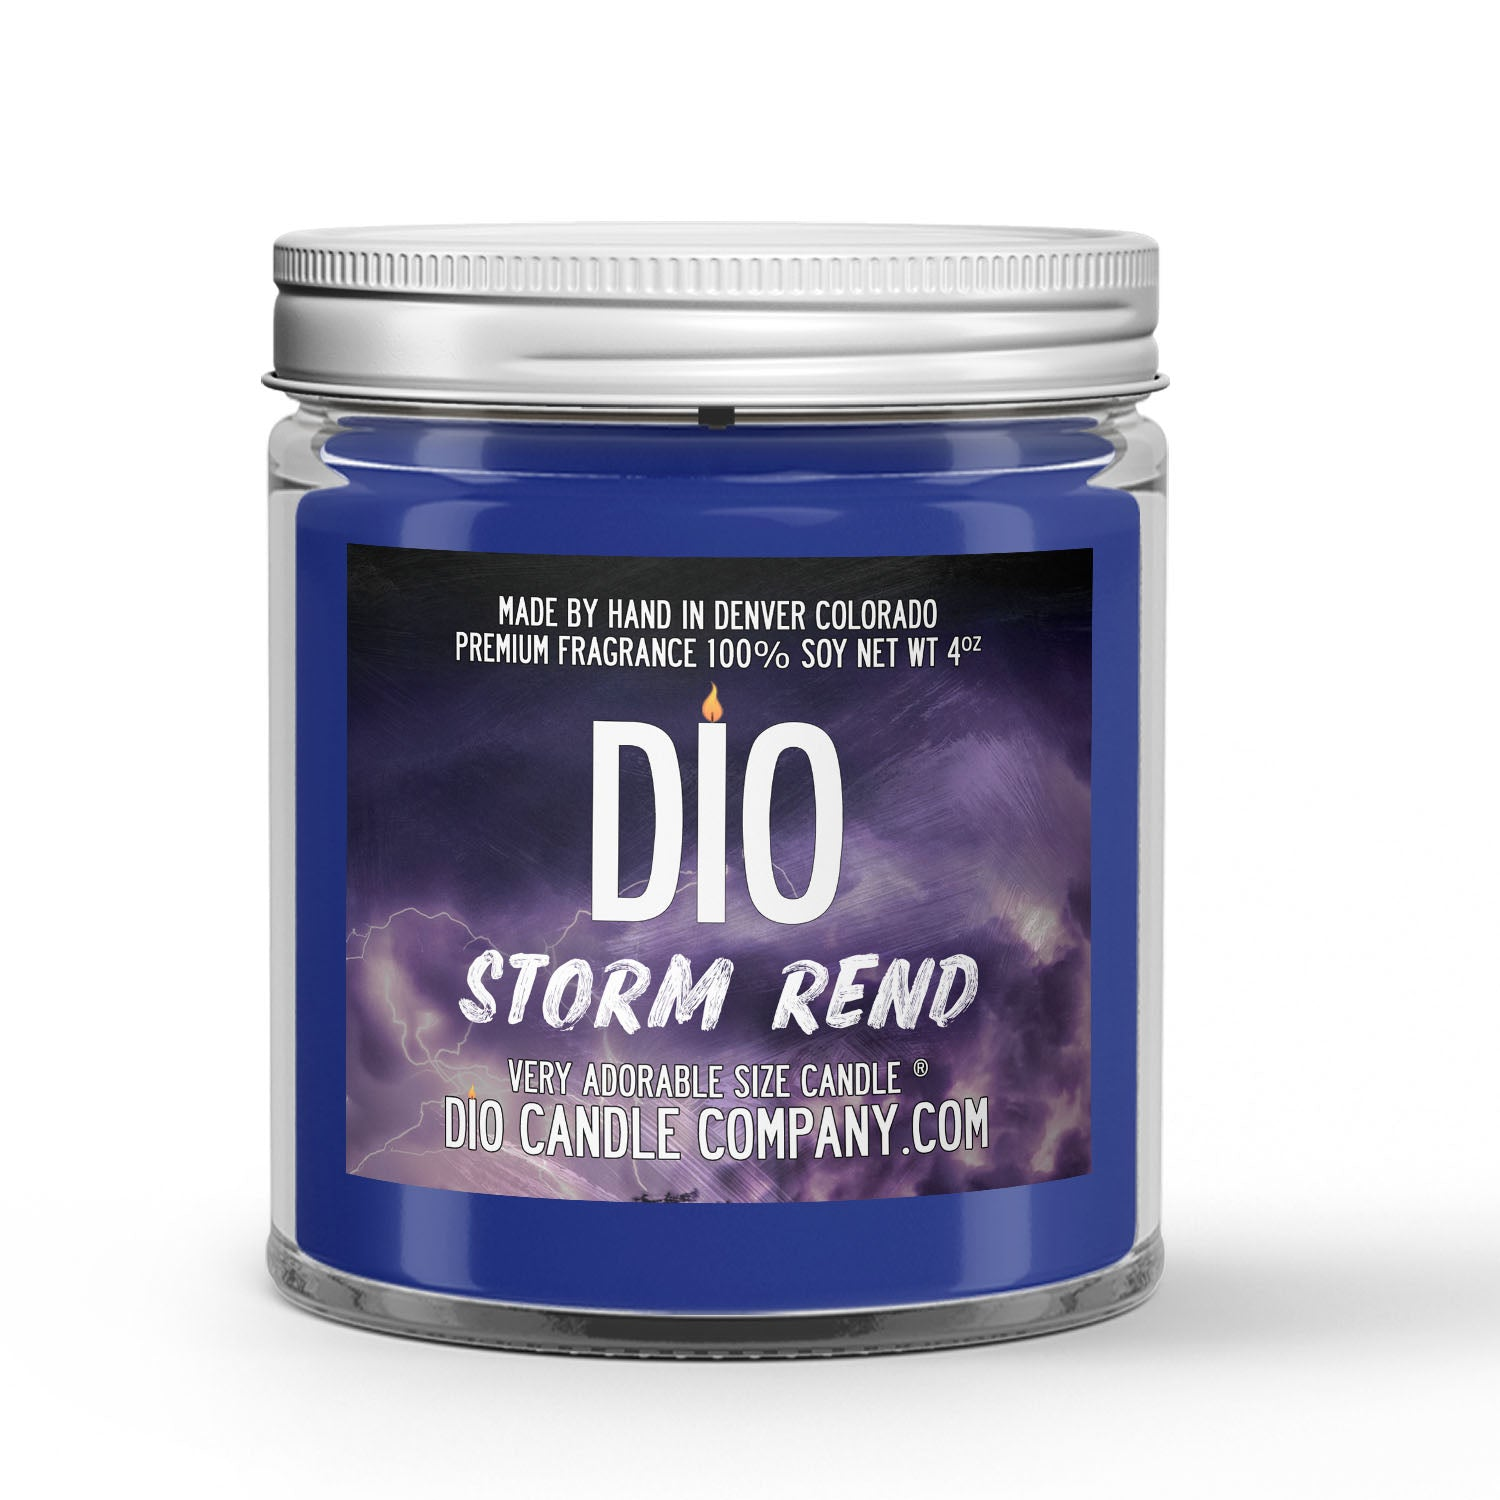 Storm Rend Candle - Storm - Mahogany - Sea Salt - 4oz Very Adorable Size Candle® - Dio Candle Company